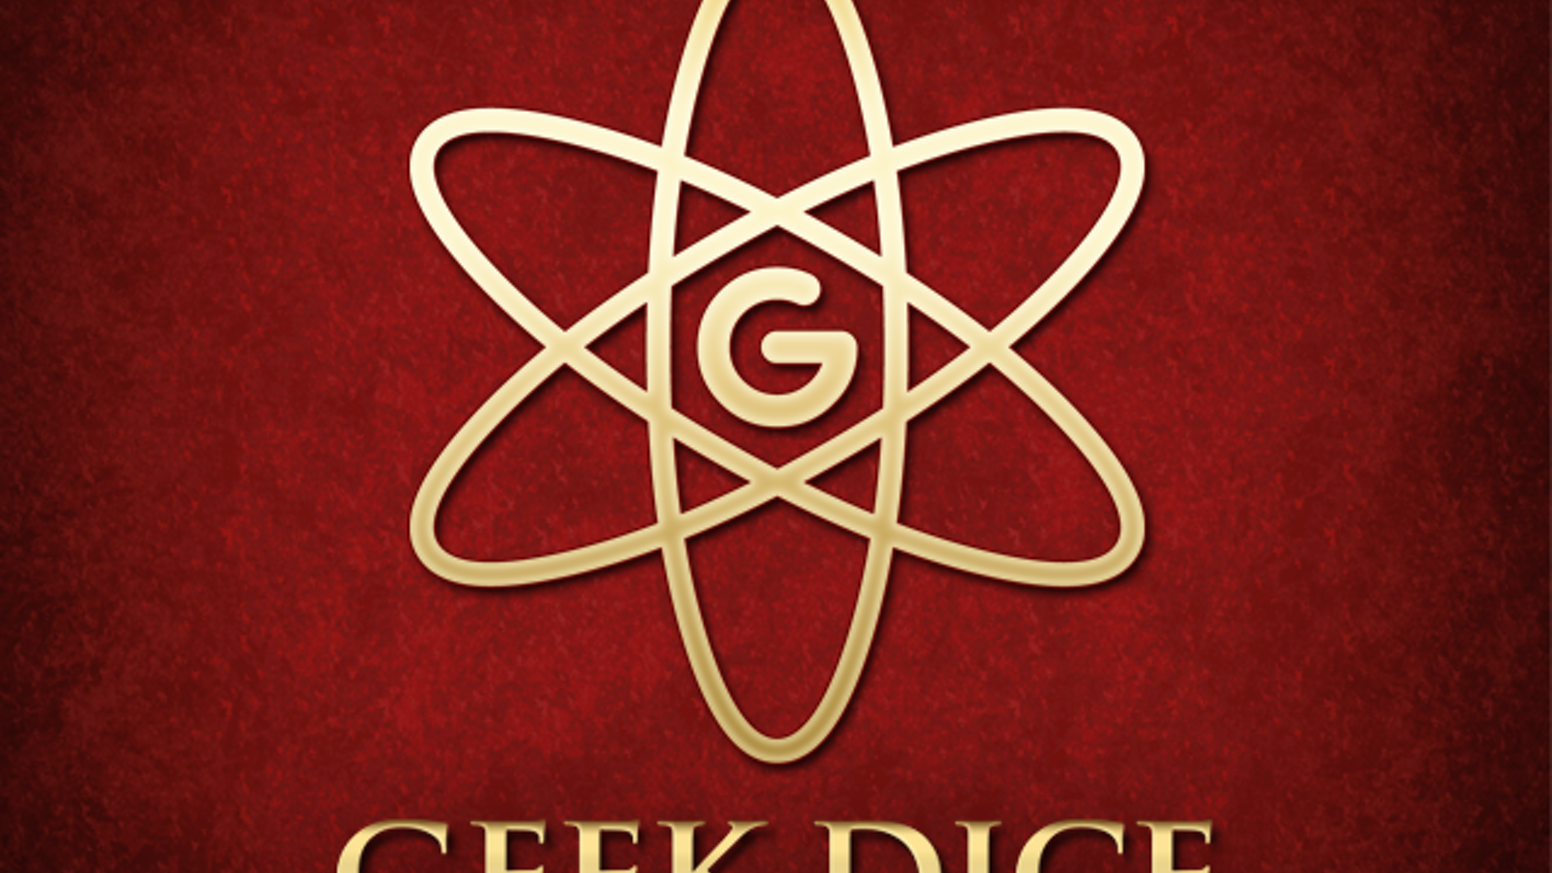 Geek Dice is a multiplayer, fast paced dice game using Rock, Paper, Scissors, Lizard, Spock. Play long and prosper!